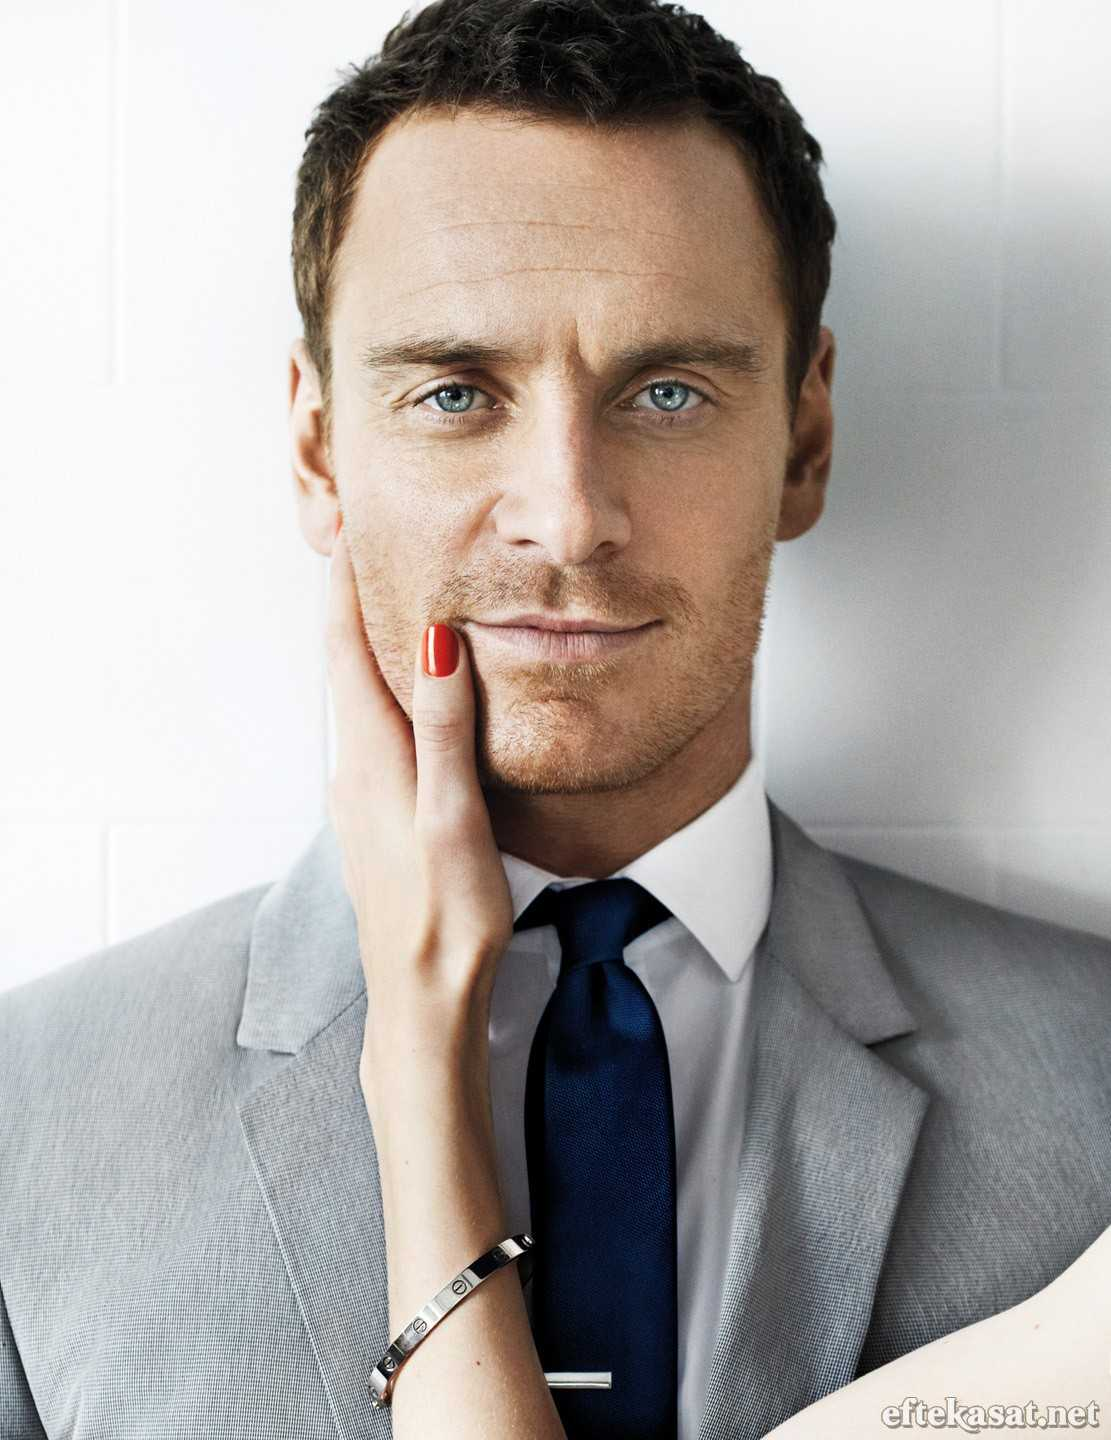 First Look At Michael Fassbender In Steve Jobs Biopic | Steve Jobs